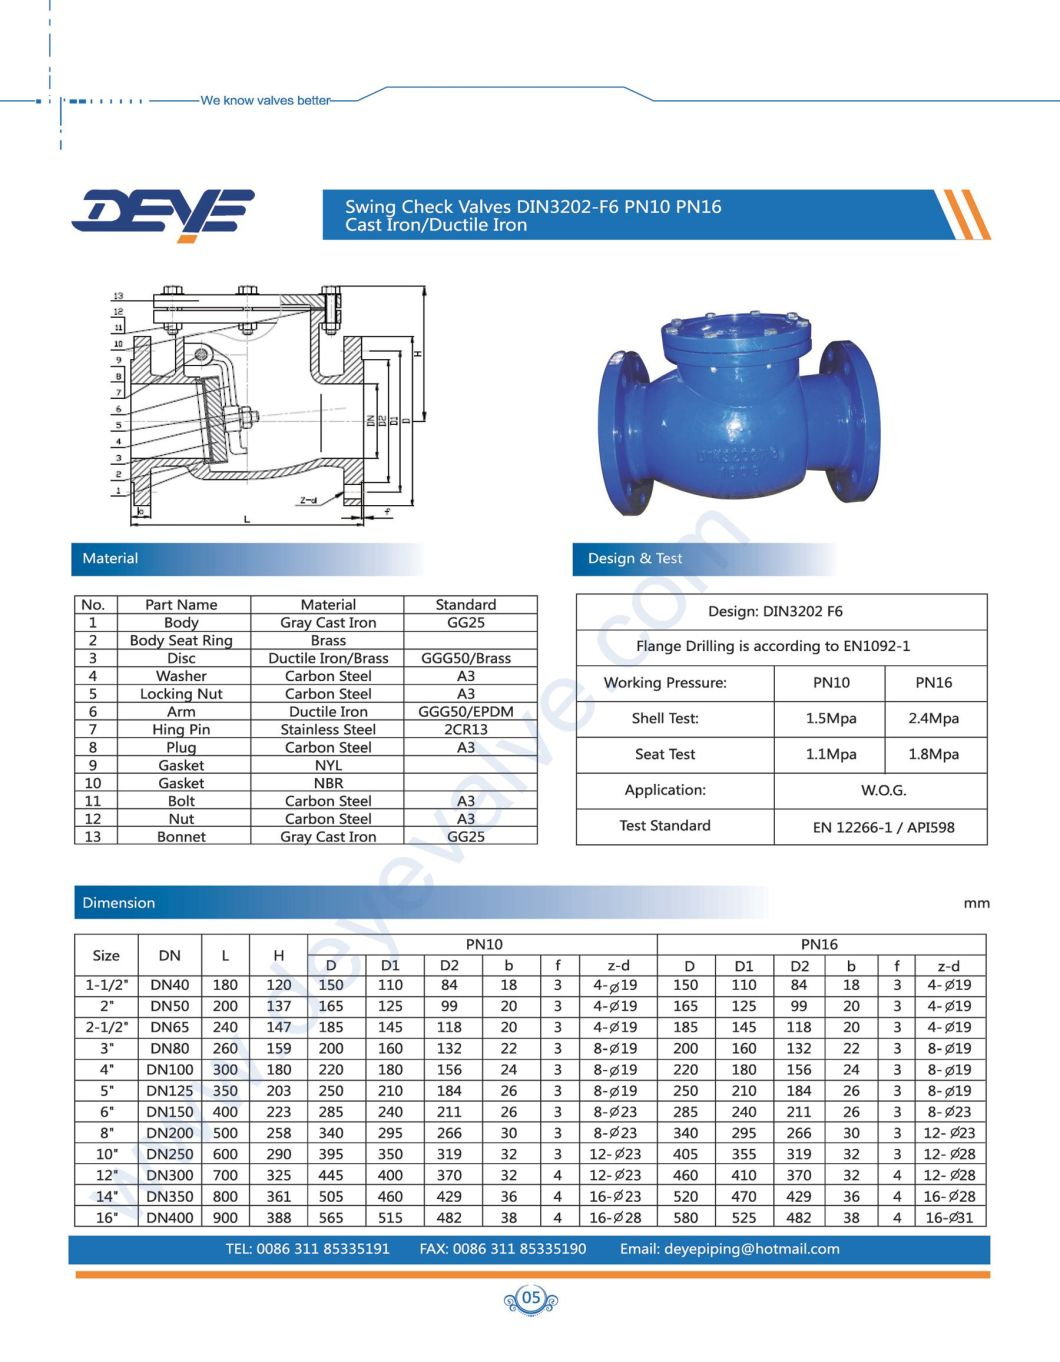 DIN 3202 F6 Pn10 Pn16 Cast Ductile Iron Swing Check Valve with Brass Seat